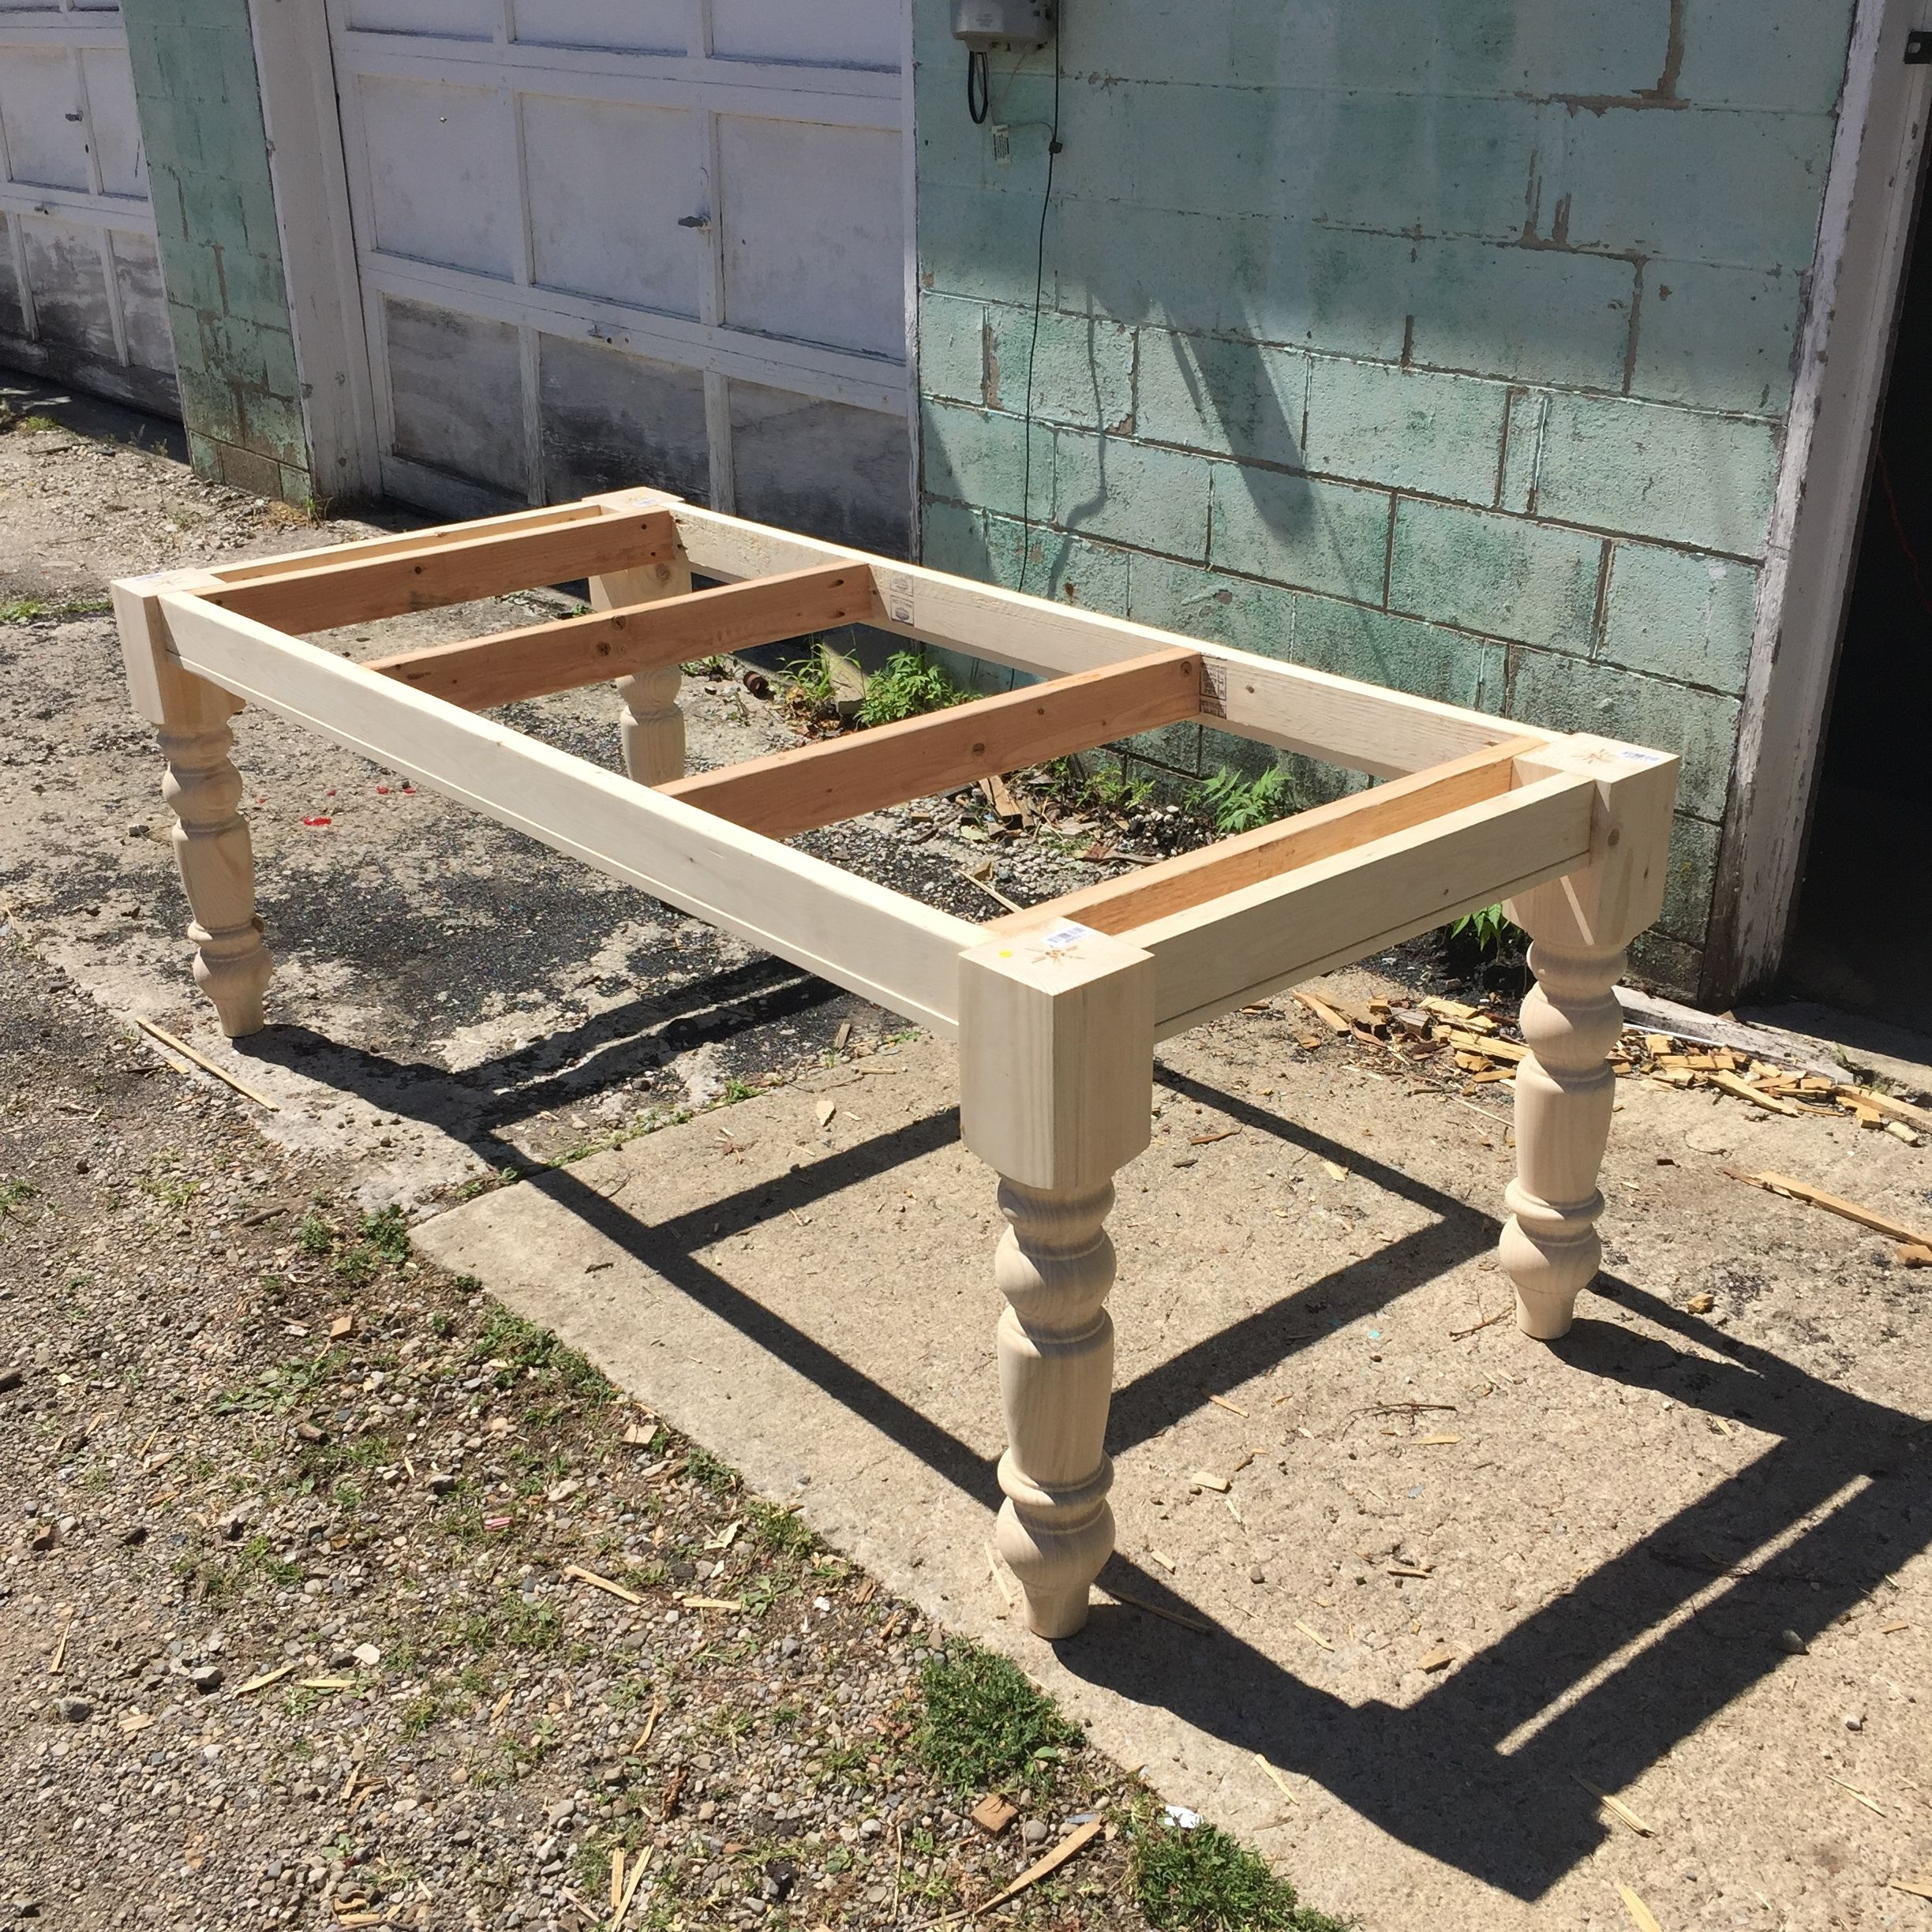 Build A Kitchen Table: Farmhouse Table Frame With Added Support.